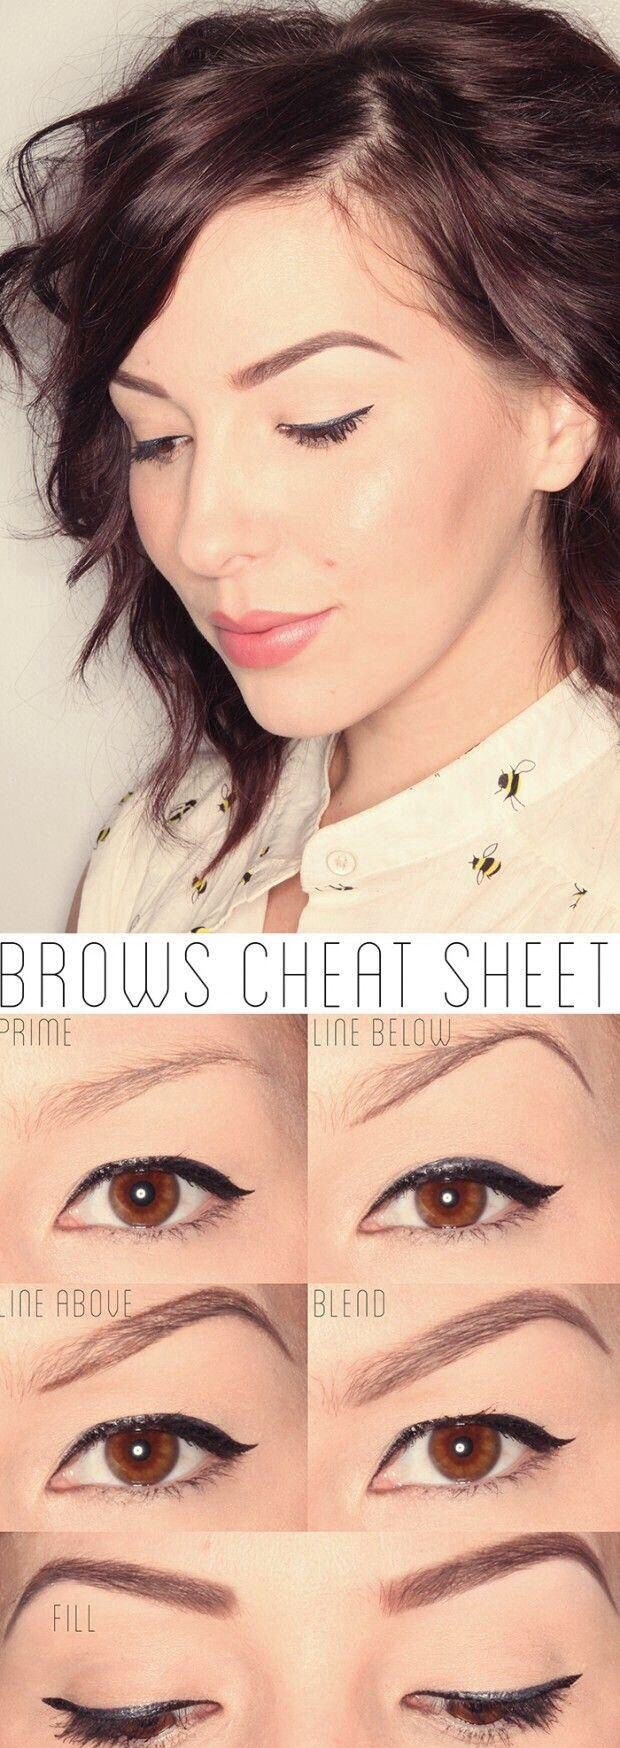 Brow cheat tip... for those of us who are makeup challenged lol.